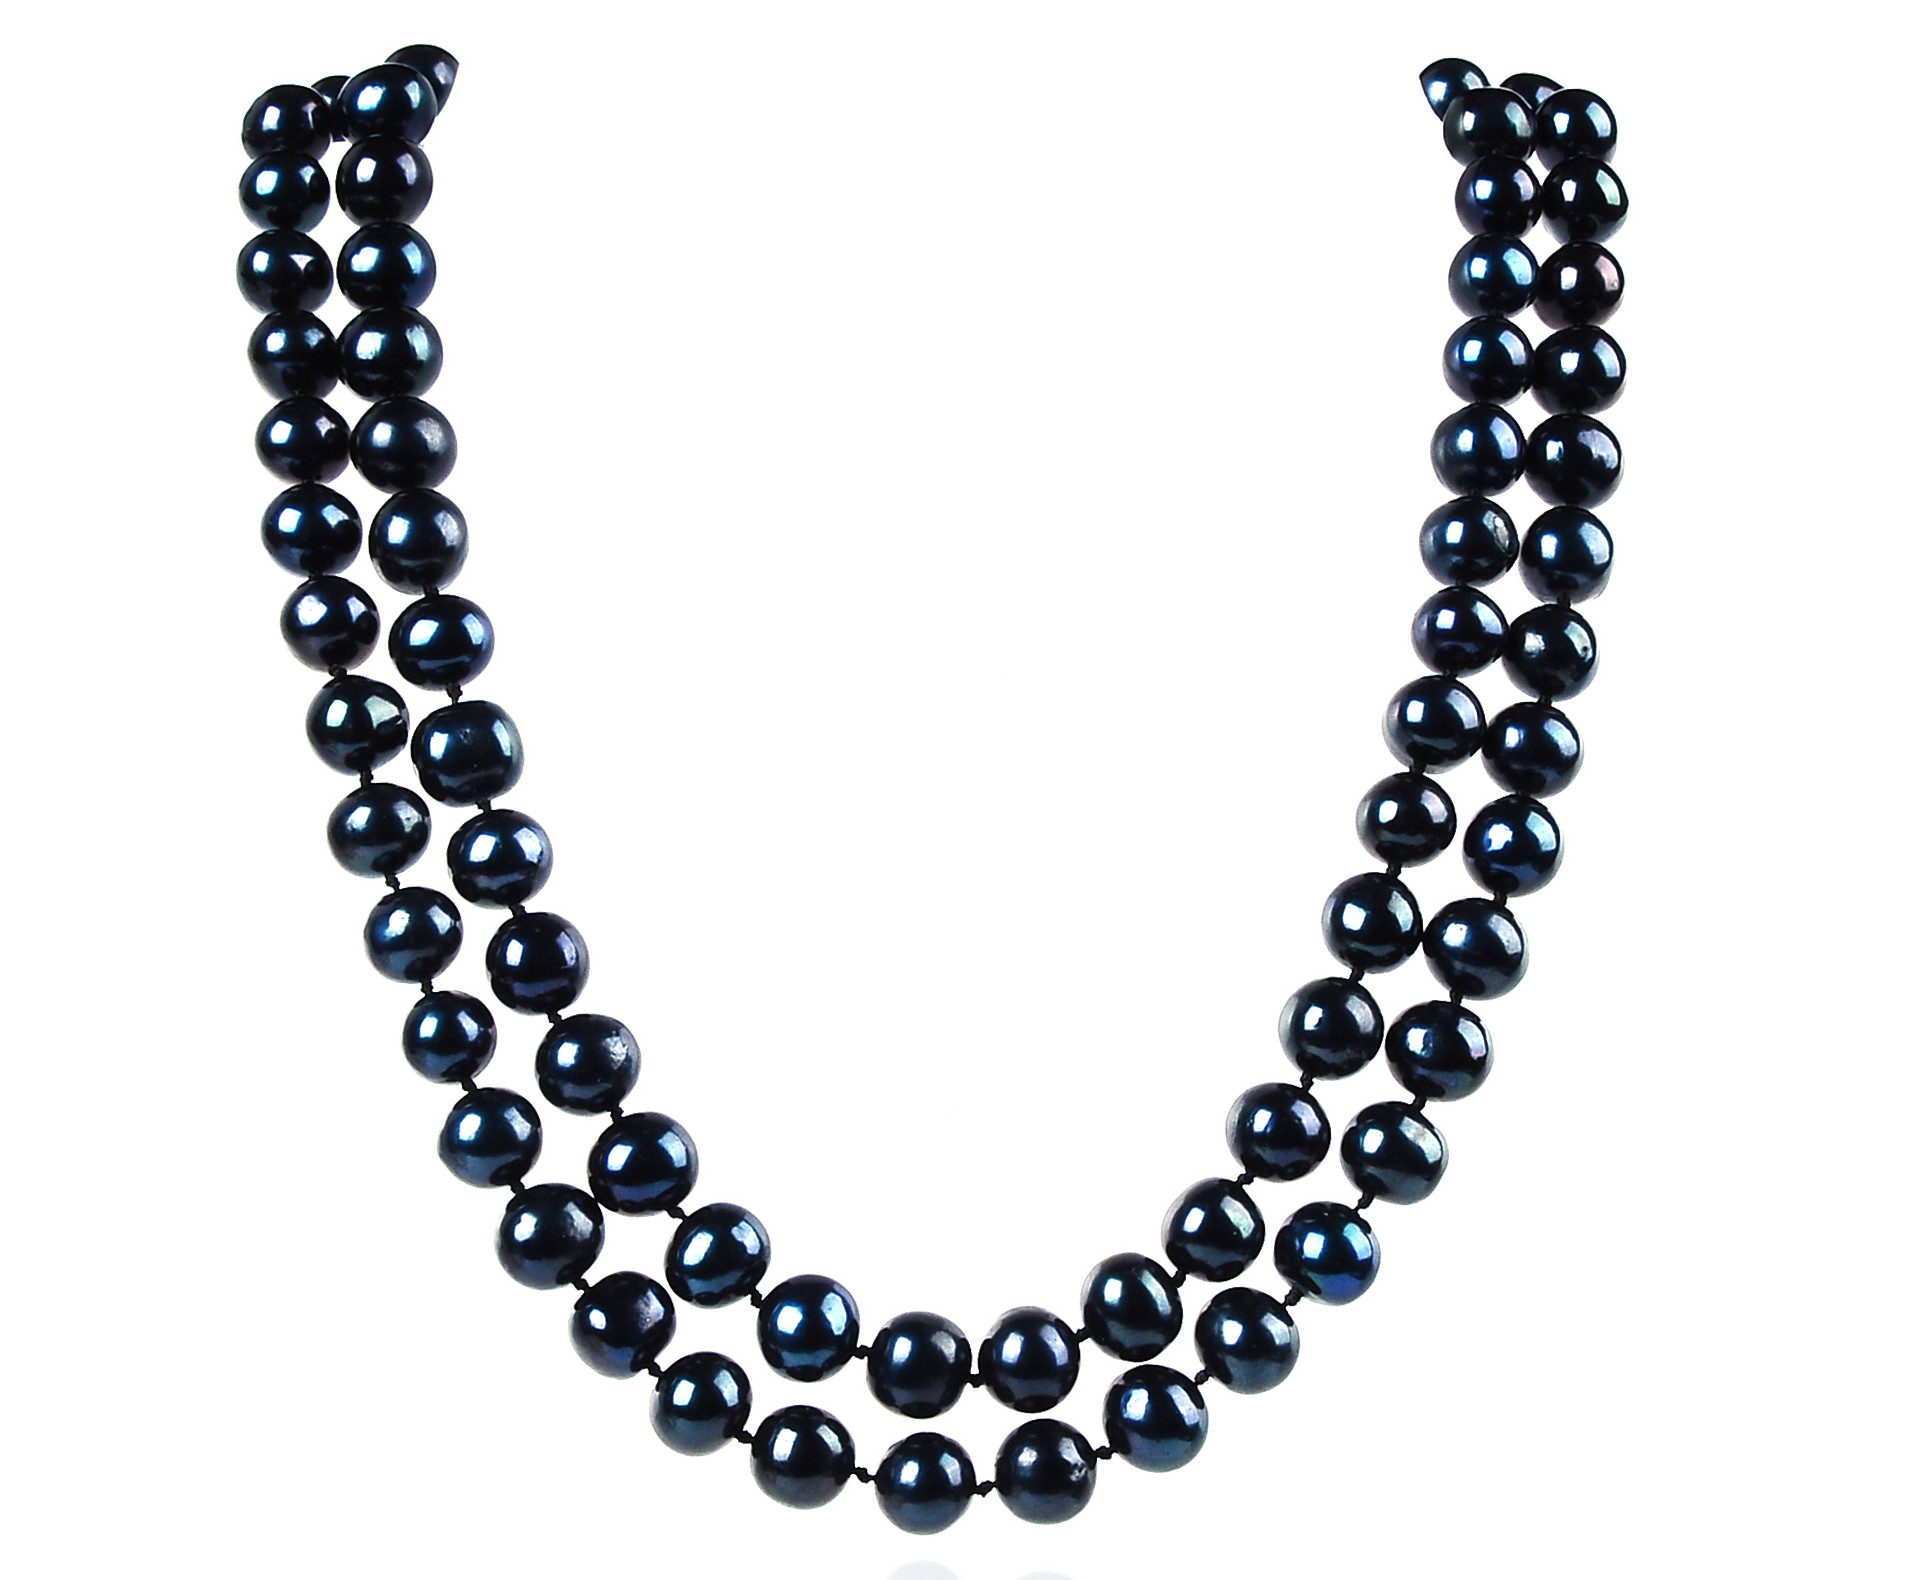 Double Strand 9.5 mm AAA- Lustrous Pure Black Freshwater Pearl Necklace -nk54